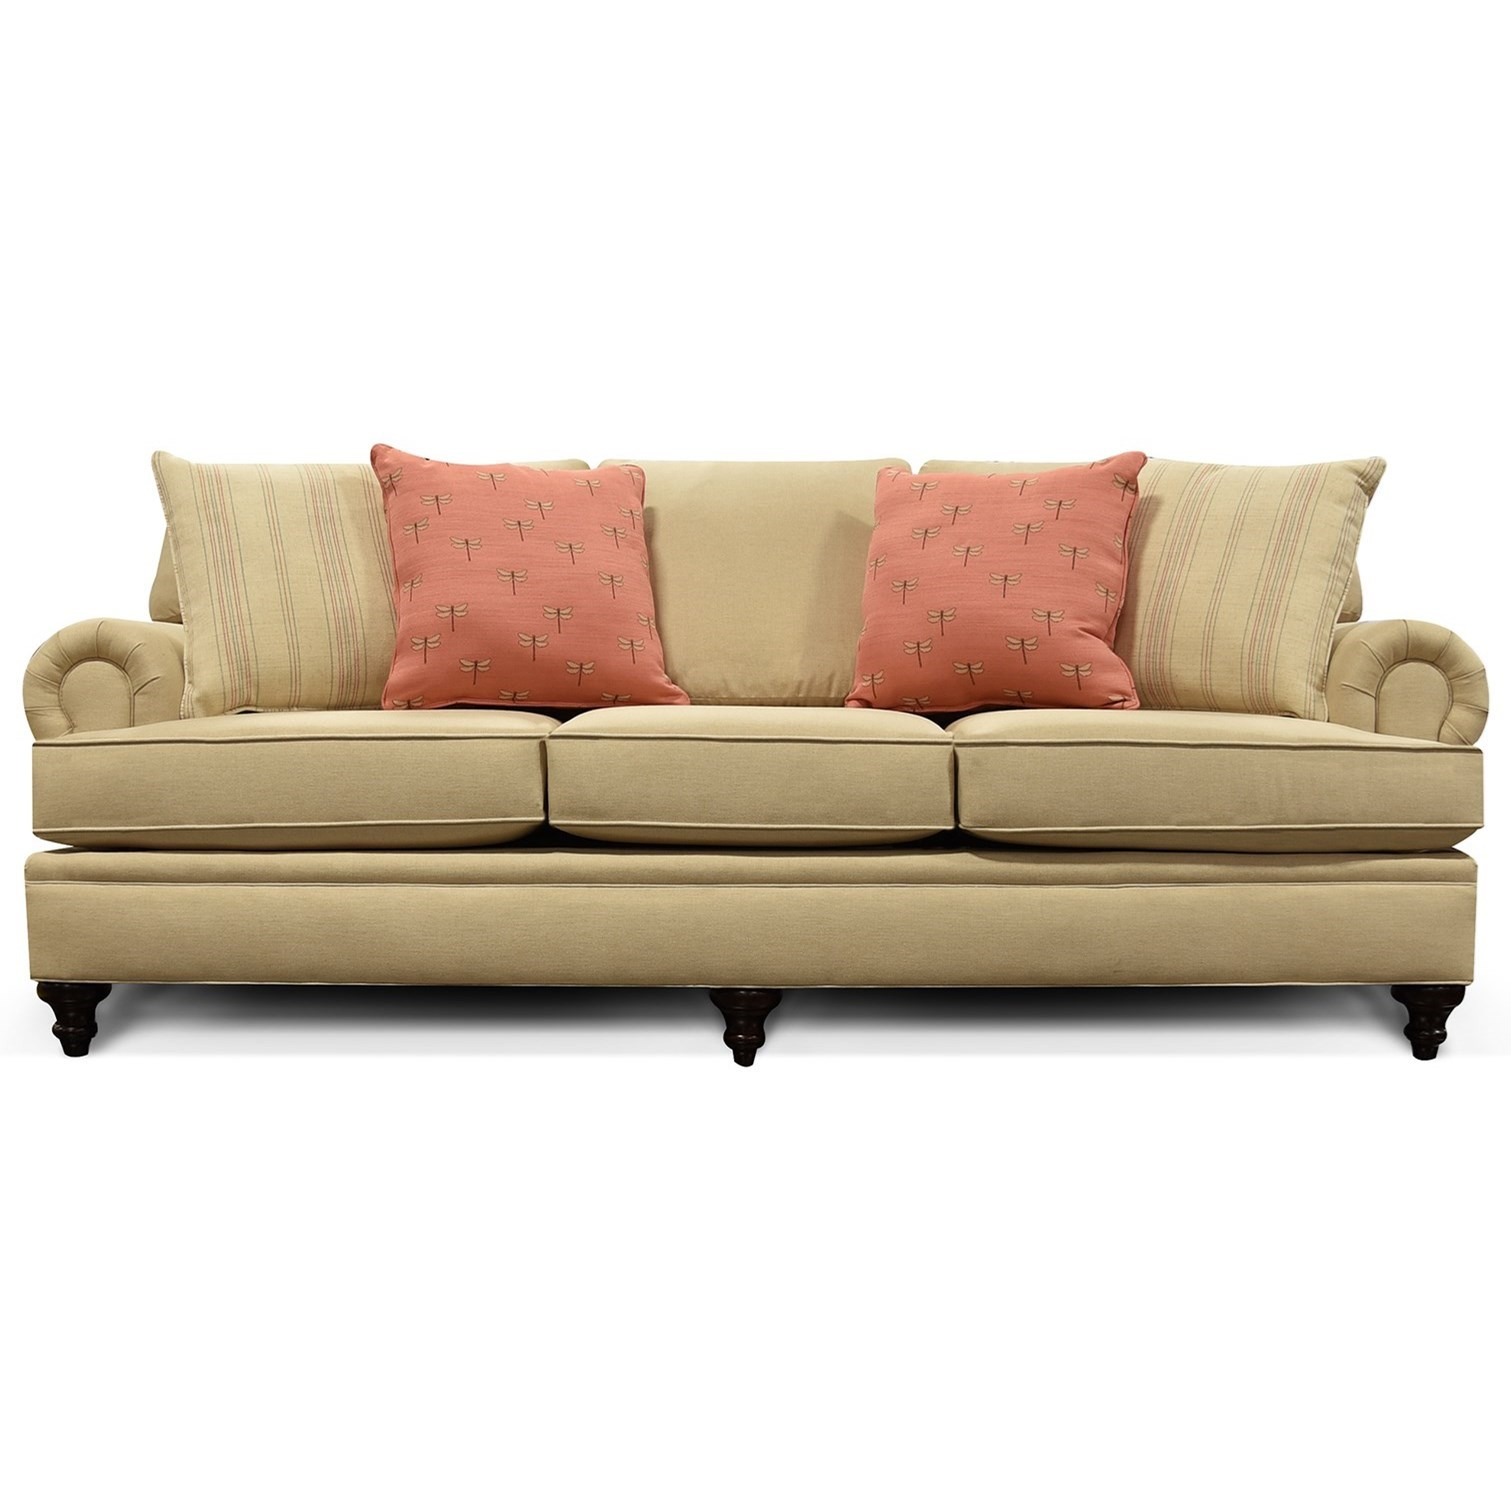 England June 2a05 Traditional Rolled Arm Sofa Furniture